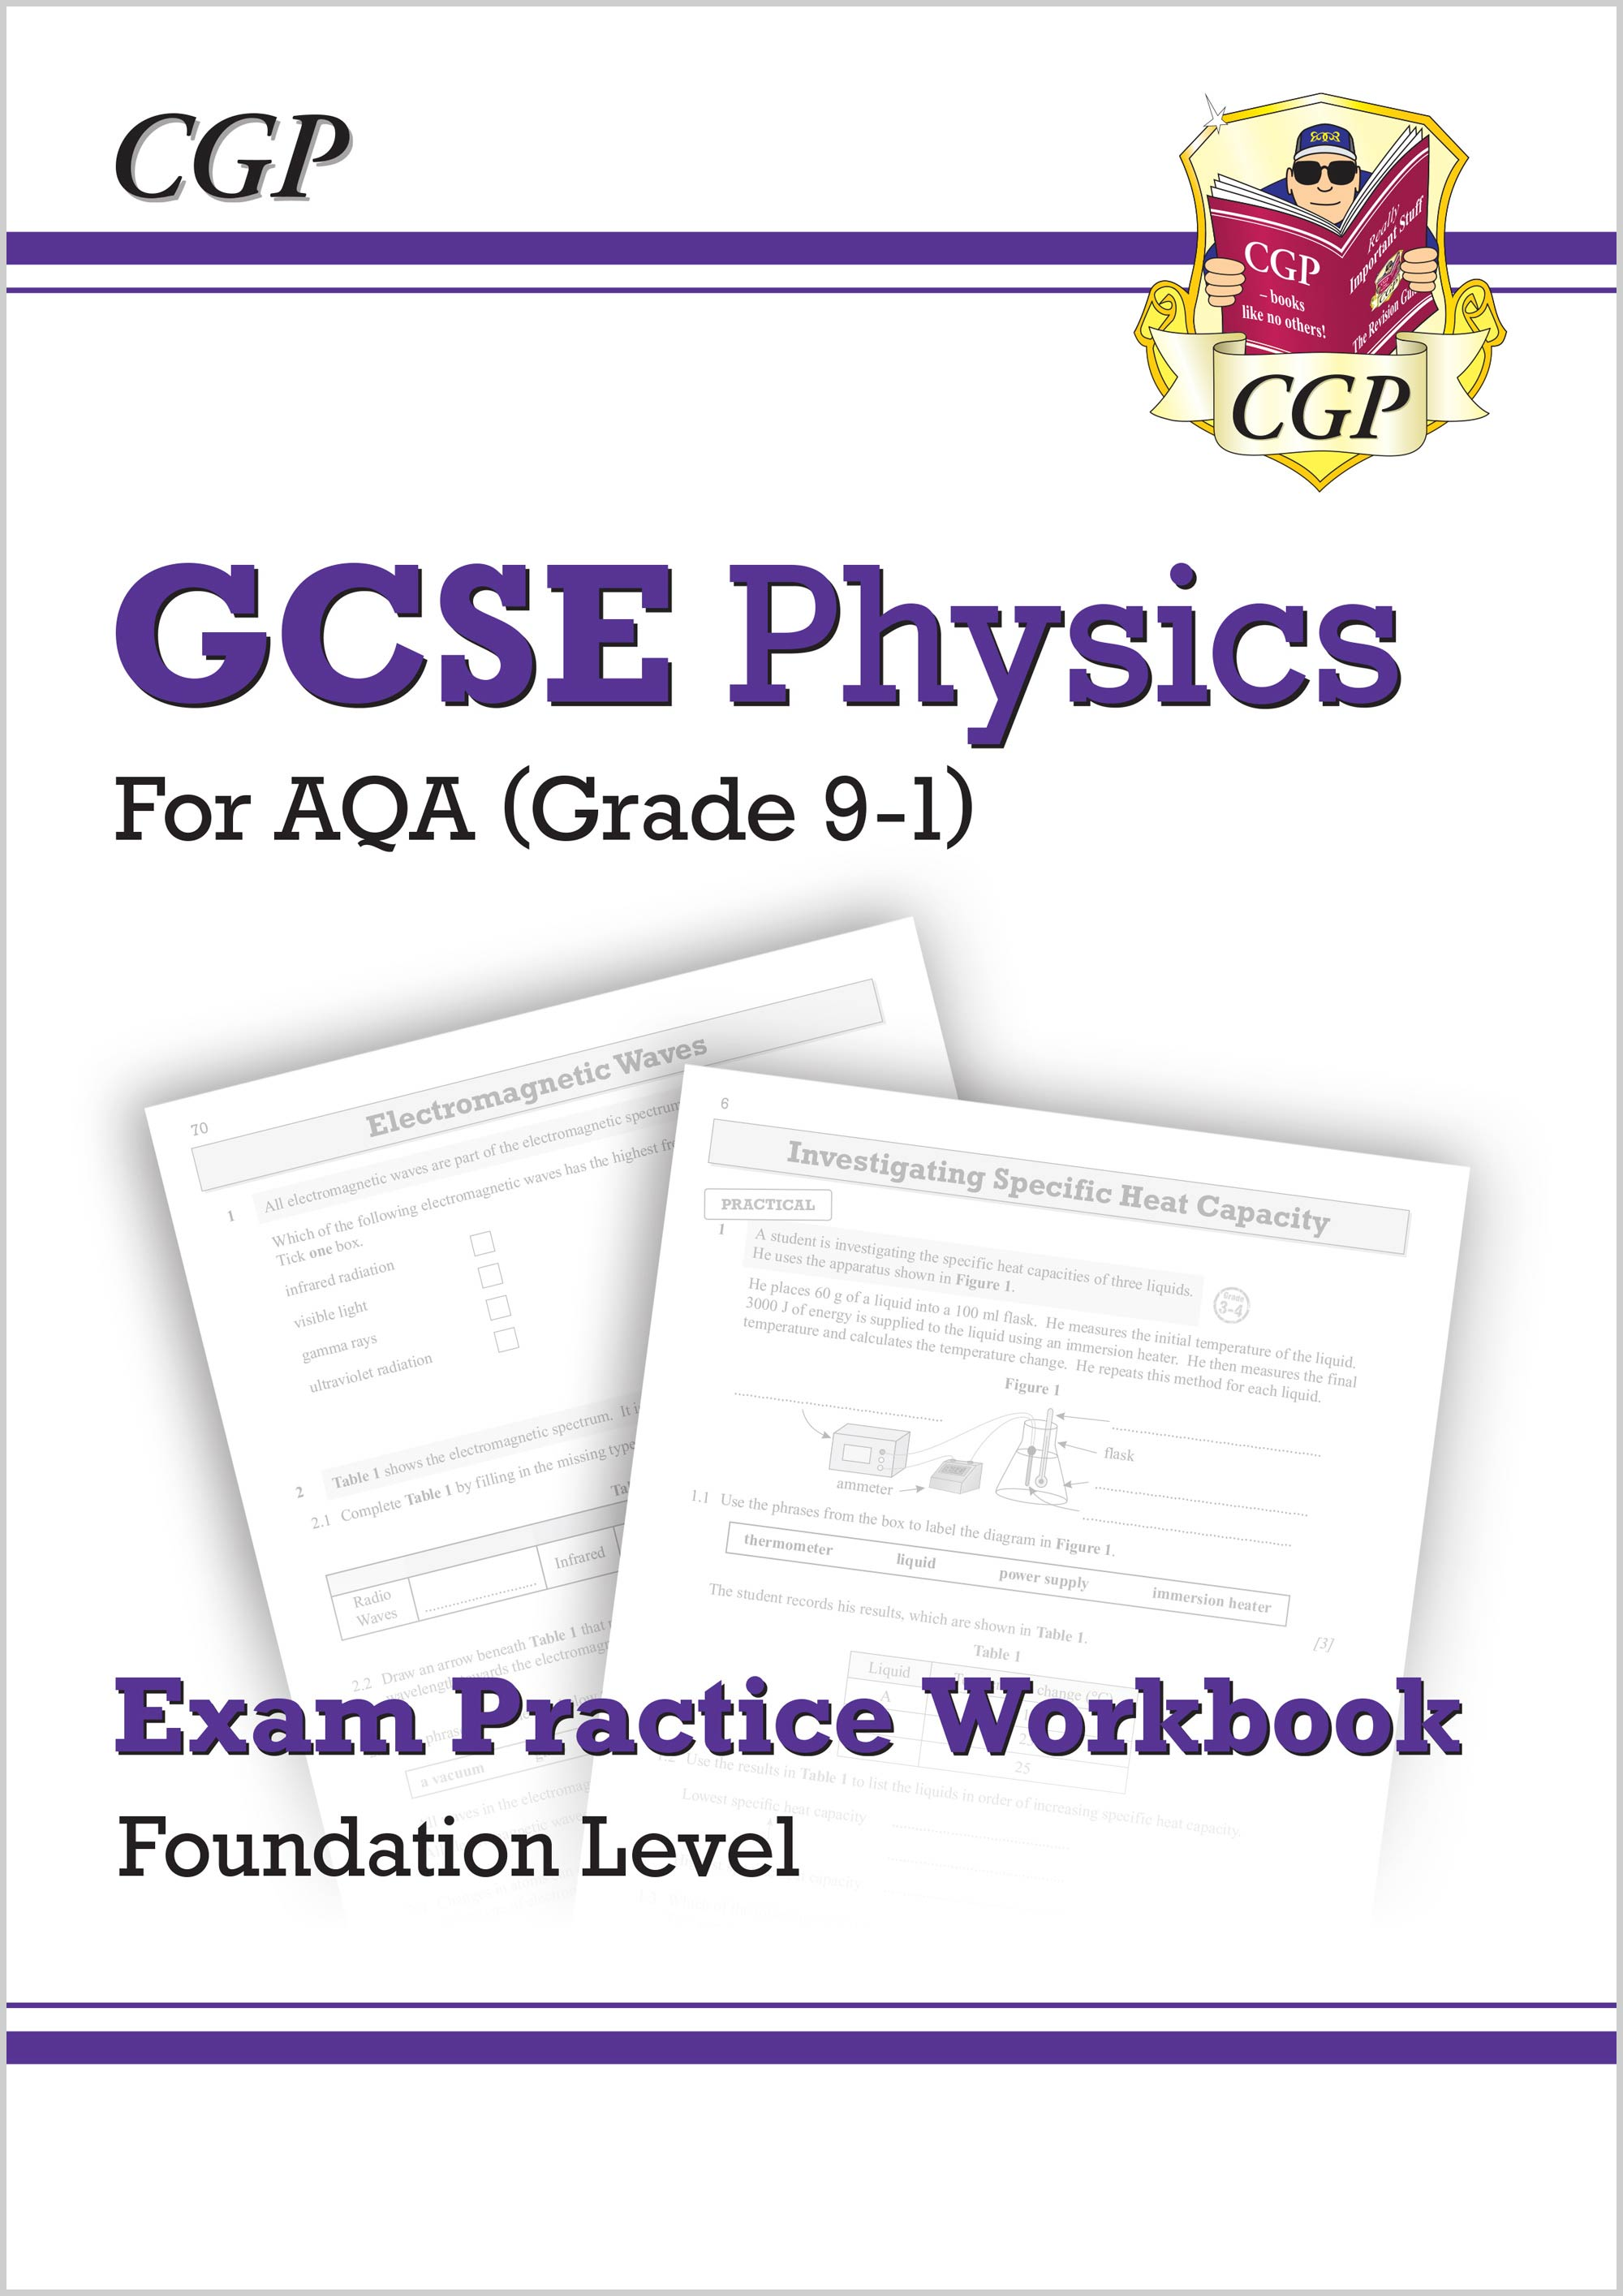 PAFQ41 - Grade 9-1 GCSE Physics: AQA Exam Practice Workbook - Foundation